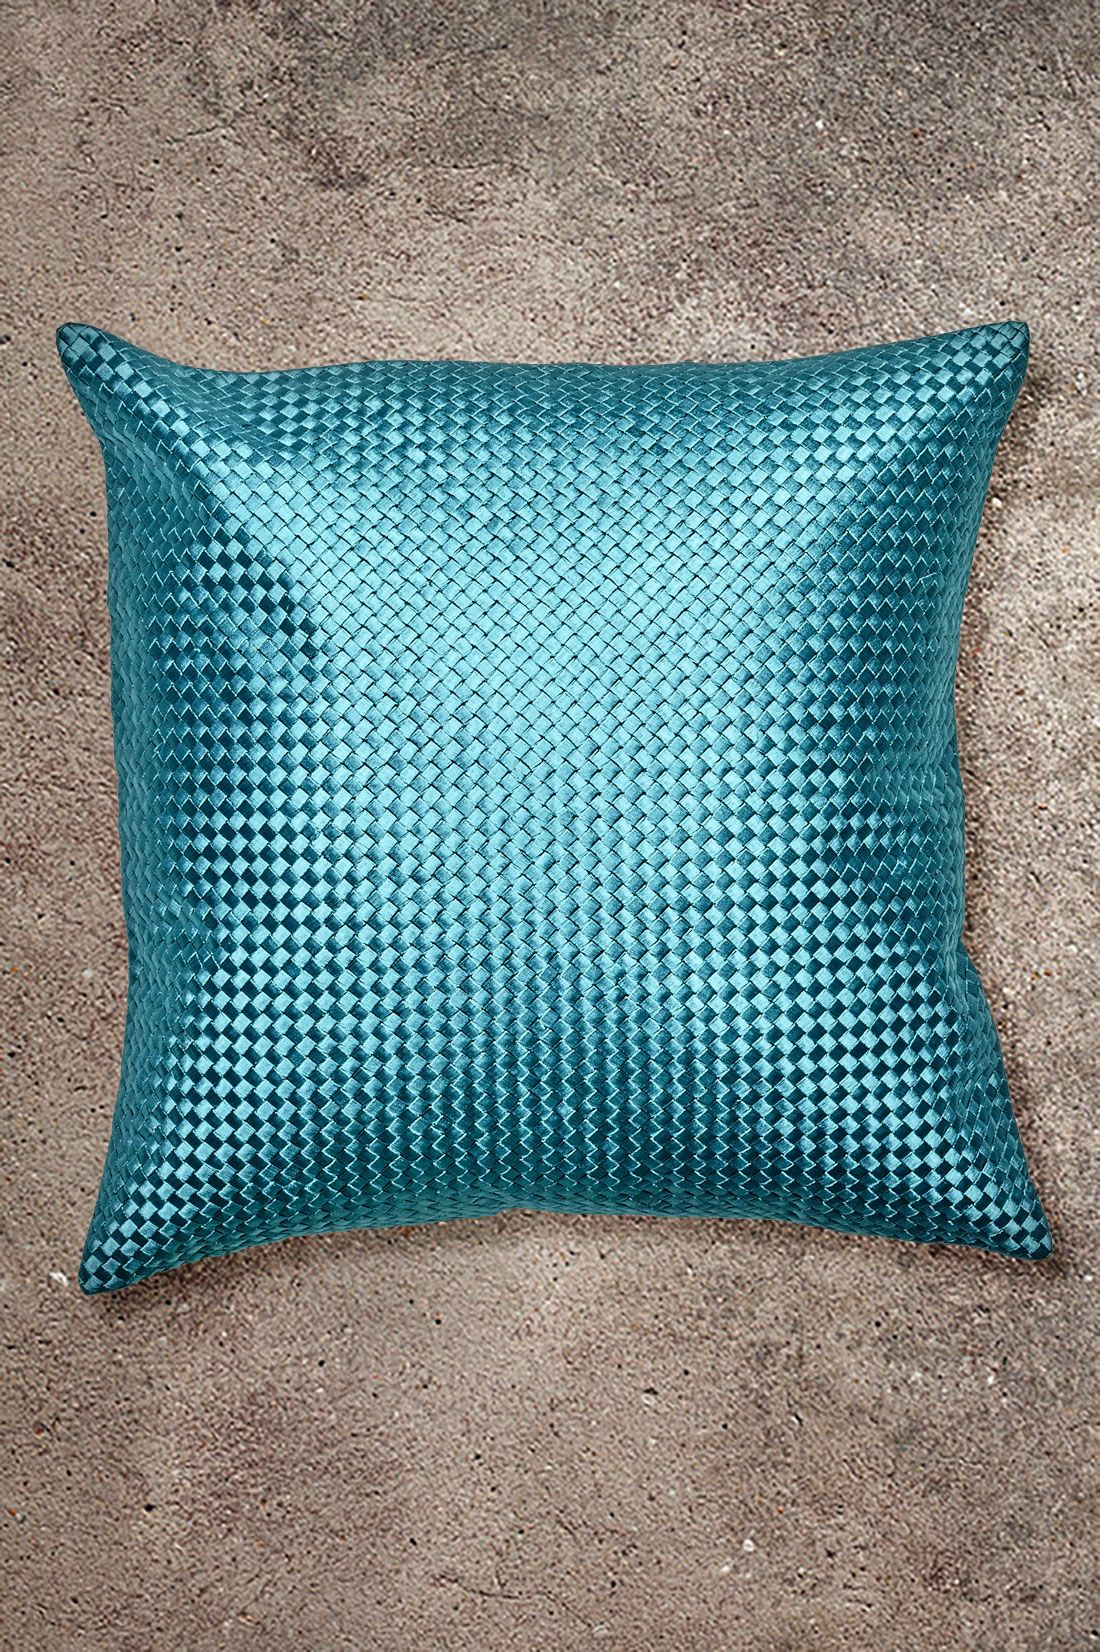 Bamboo Weave teal